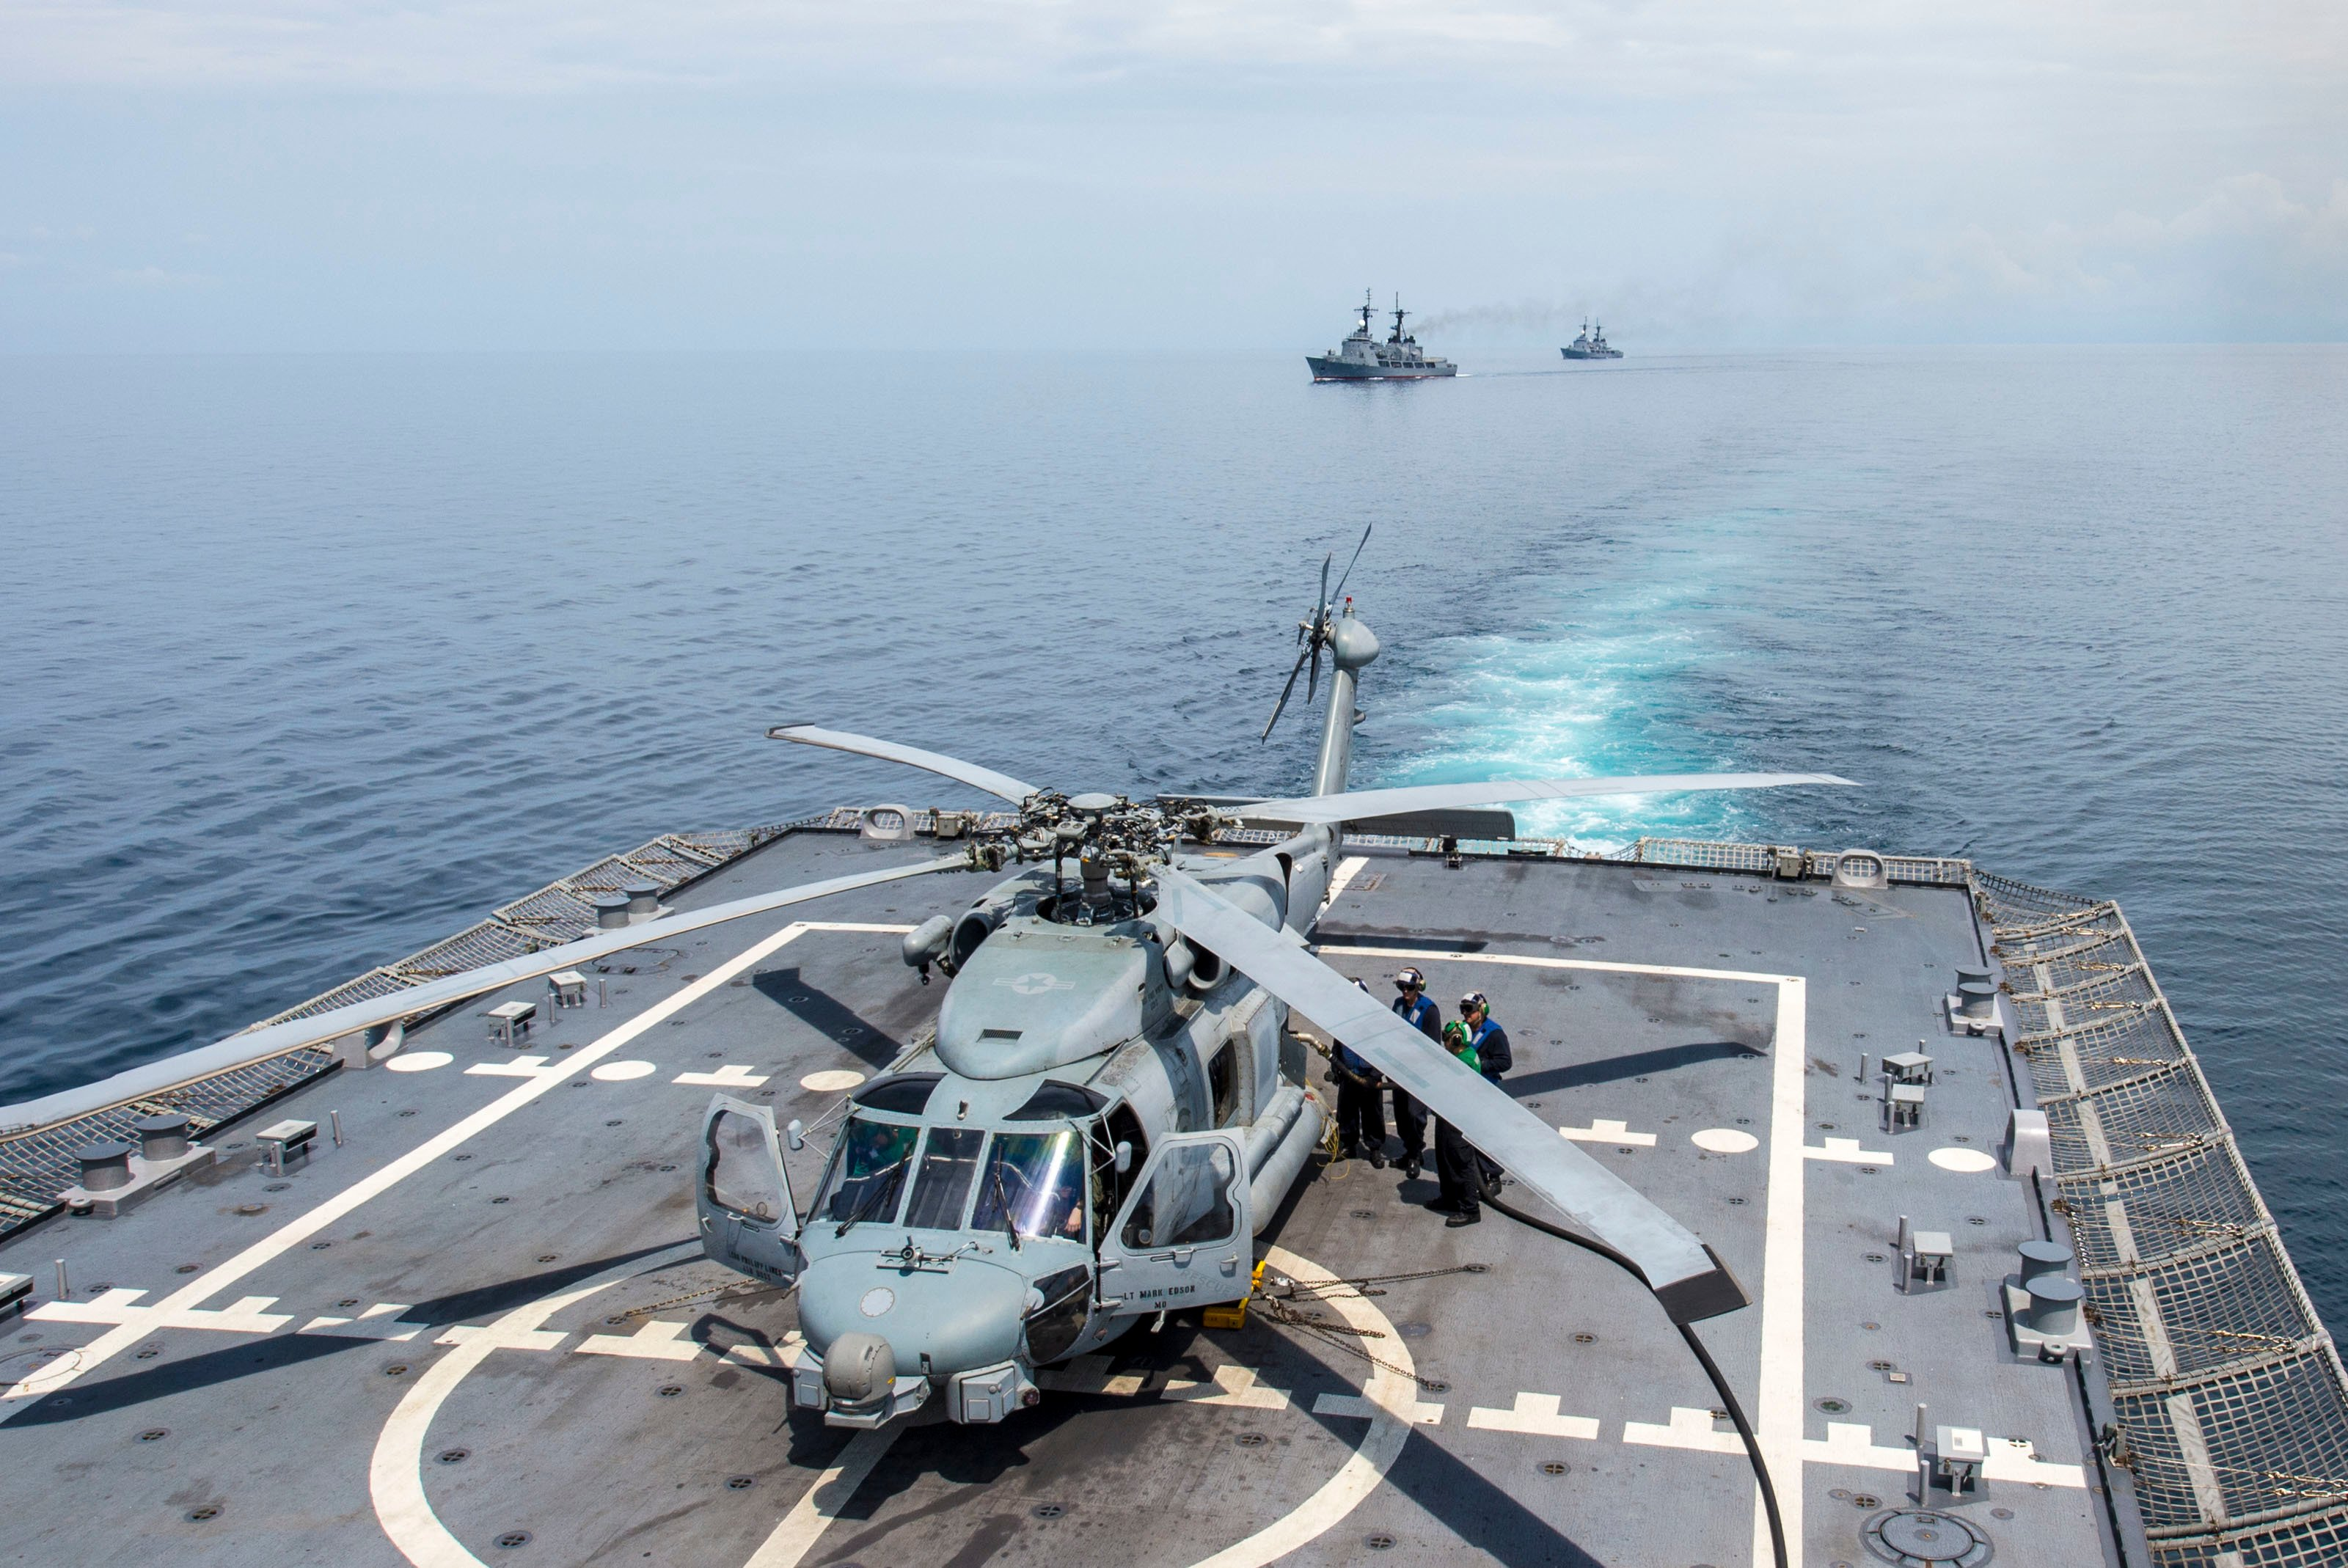 Sailors refuel an MH-60R Sea Hawk helicopter attached to Helicopter Maritime Strike Squadron (HSM) 35 aboard the littoral combat ship USS Fort Worth (LCS 3) during a maneuvering exercise with Philippine navy ships BRP Gregorio del Pilar (PF 15) and BRP Ramon Alcaraz (PF 16) in the South China Sea on June 24, 2015. US Navy photo.